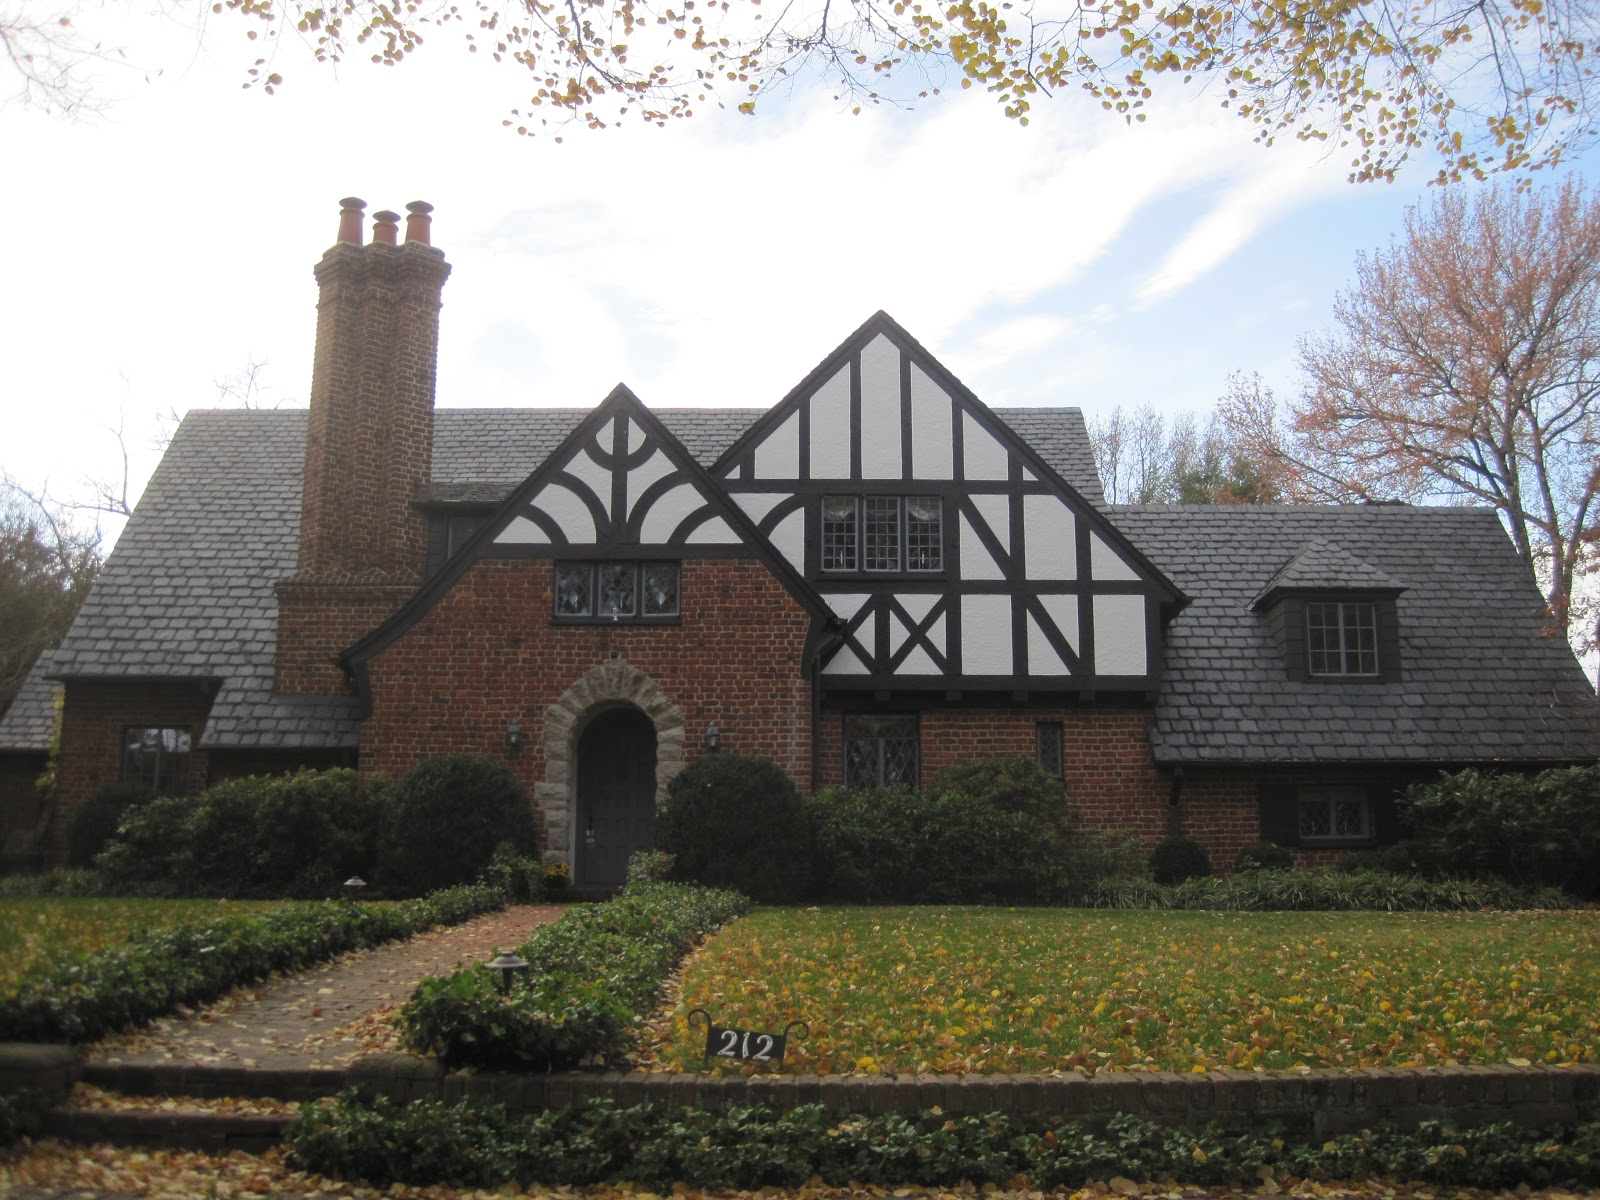 Architect design windsor farms richmond Tudor style fence